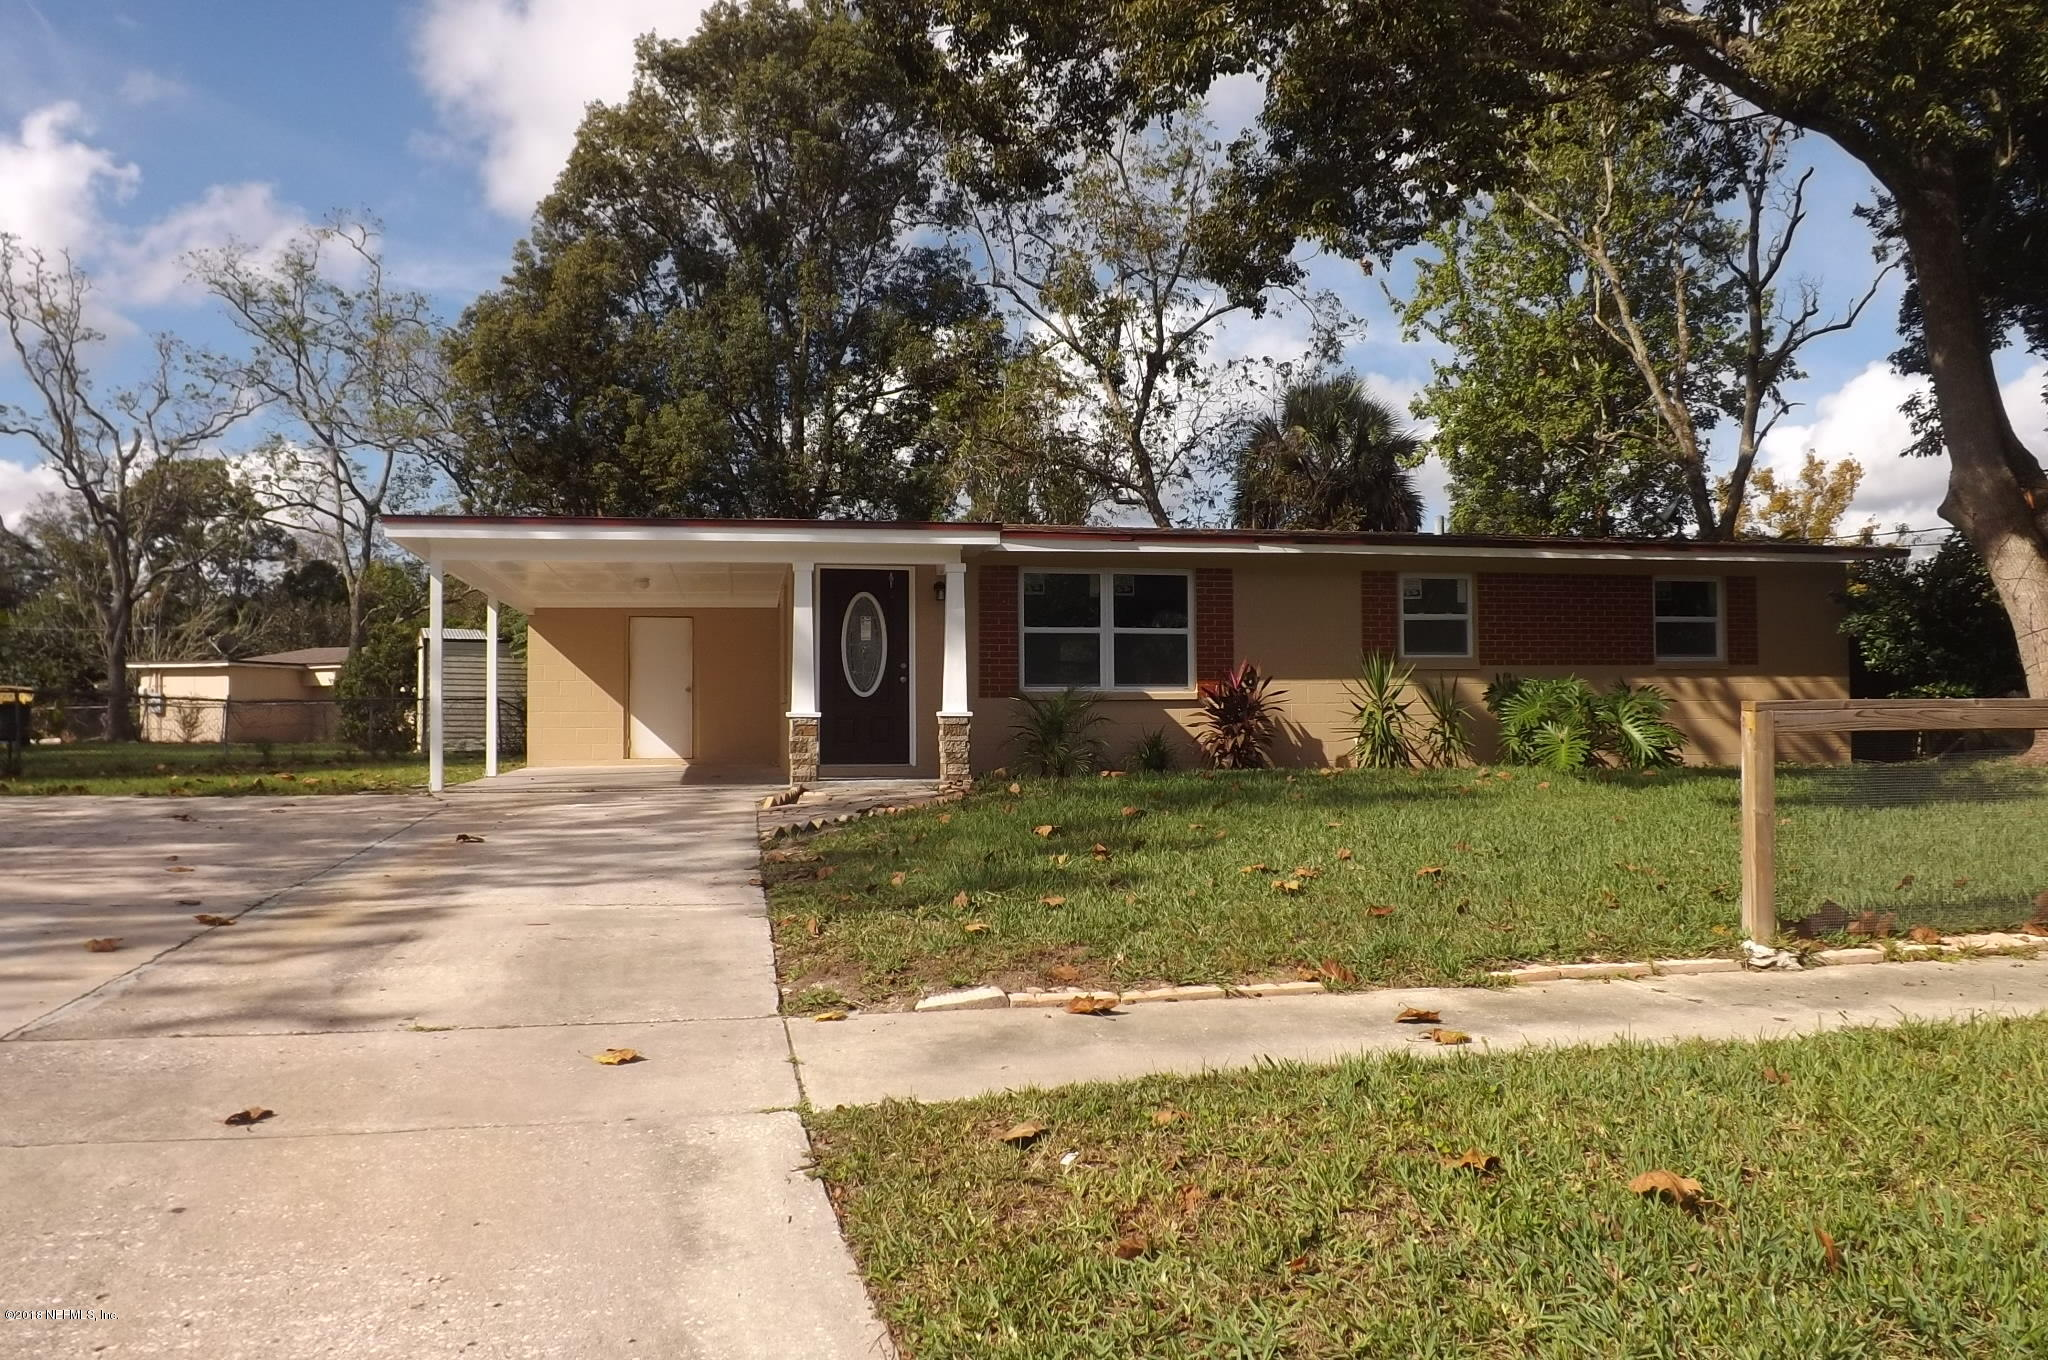 5906 COLIMA, JACKSONVILLE, FLORIDA 32244, 3 Bedrooms Bedrooms, ,1 BathroomBathrooms,Residential - single family,For sale,COLIMA,967105